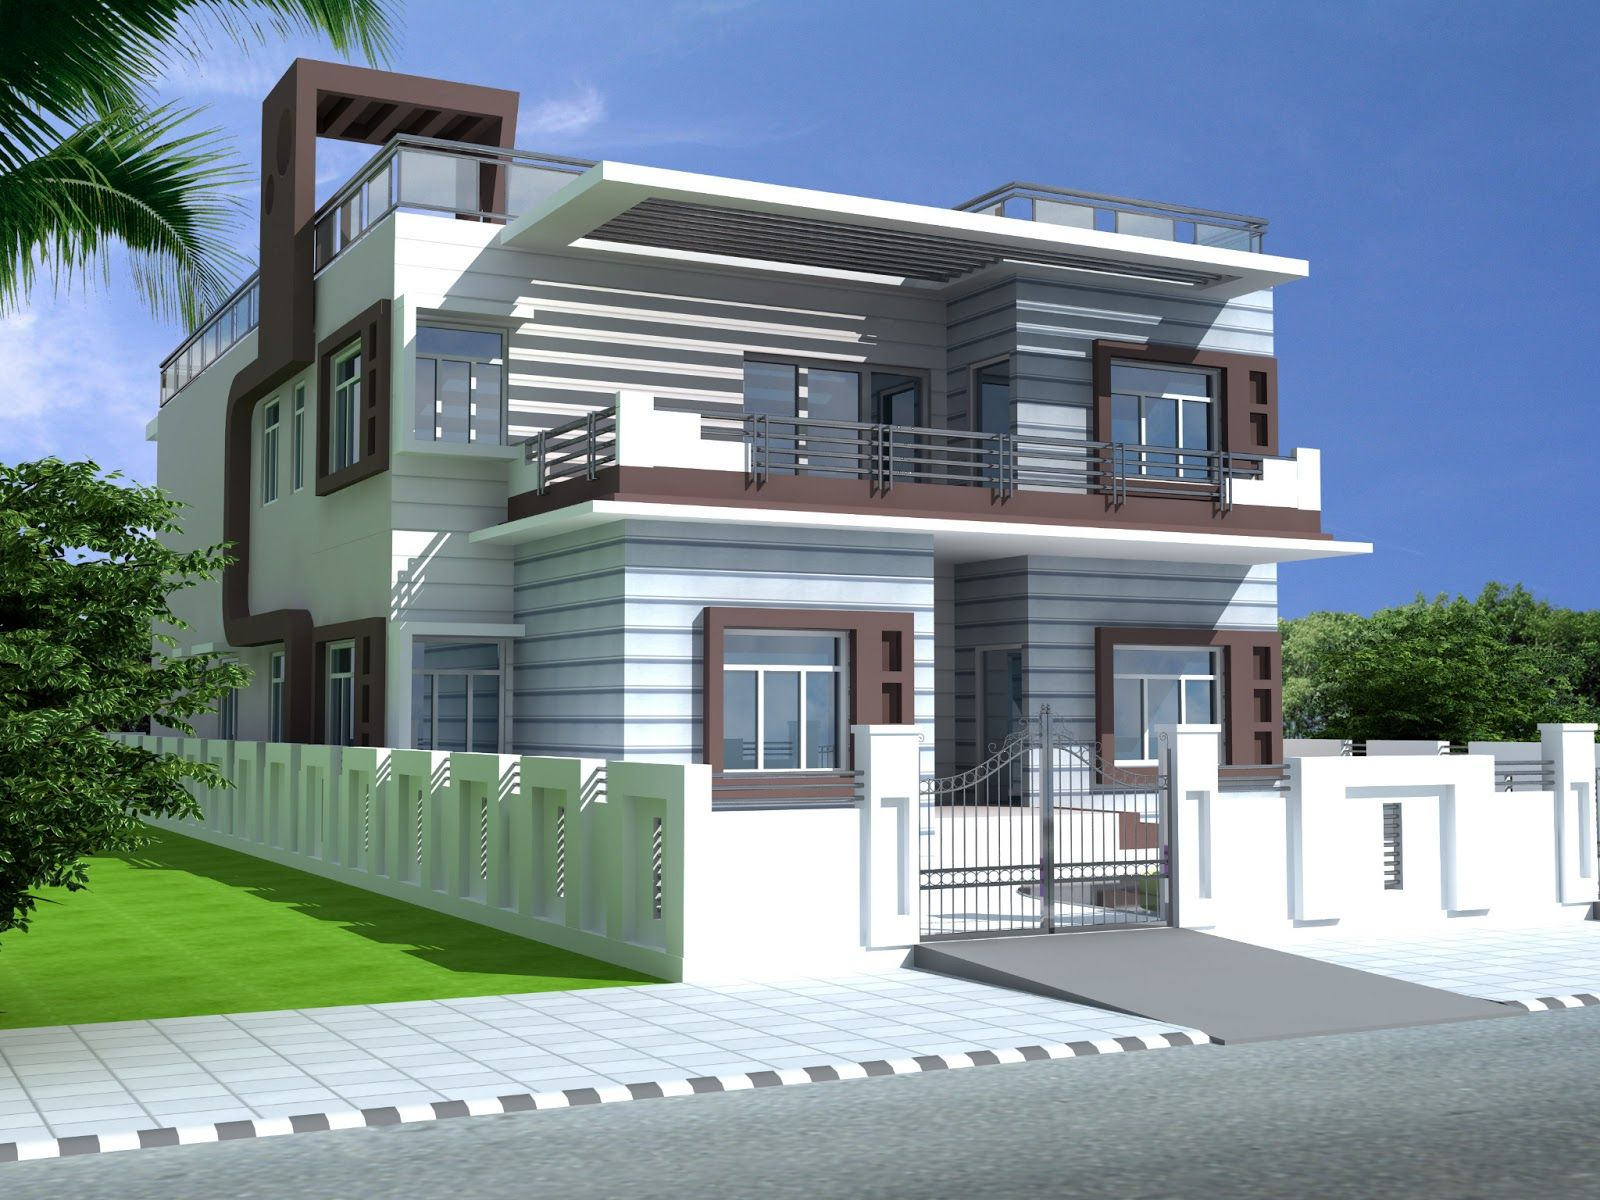 6 bedrooms duplex house design in 390m2 13m x 30m for Front view of duplex house in india